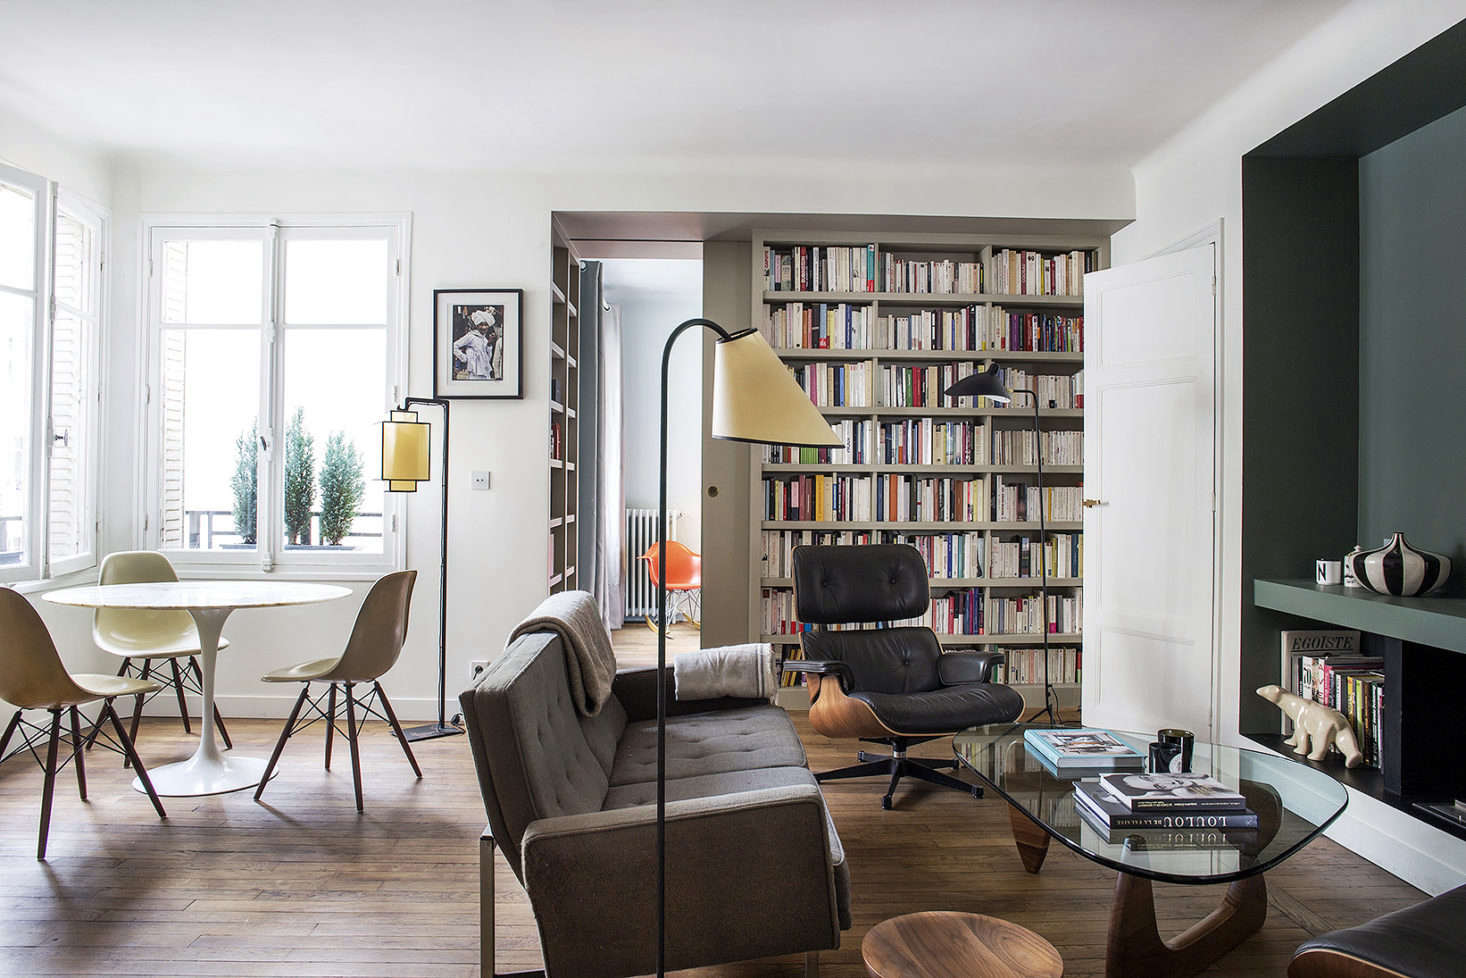 https://cdn.remodelista.com/wp-content/uploads/2017/02/Small-Paris-apartment-living-room-Philippe-Harden-design-3-1466x978.jpg